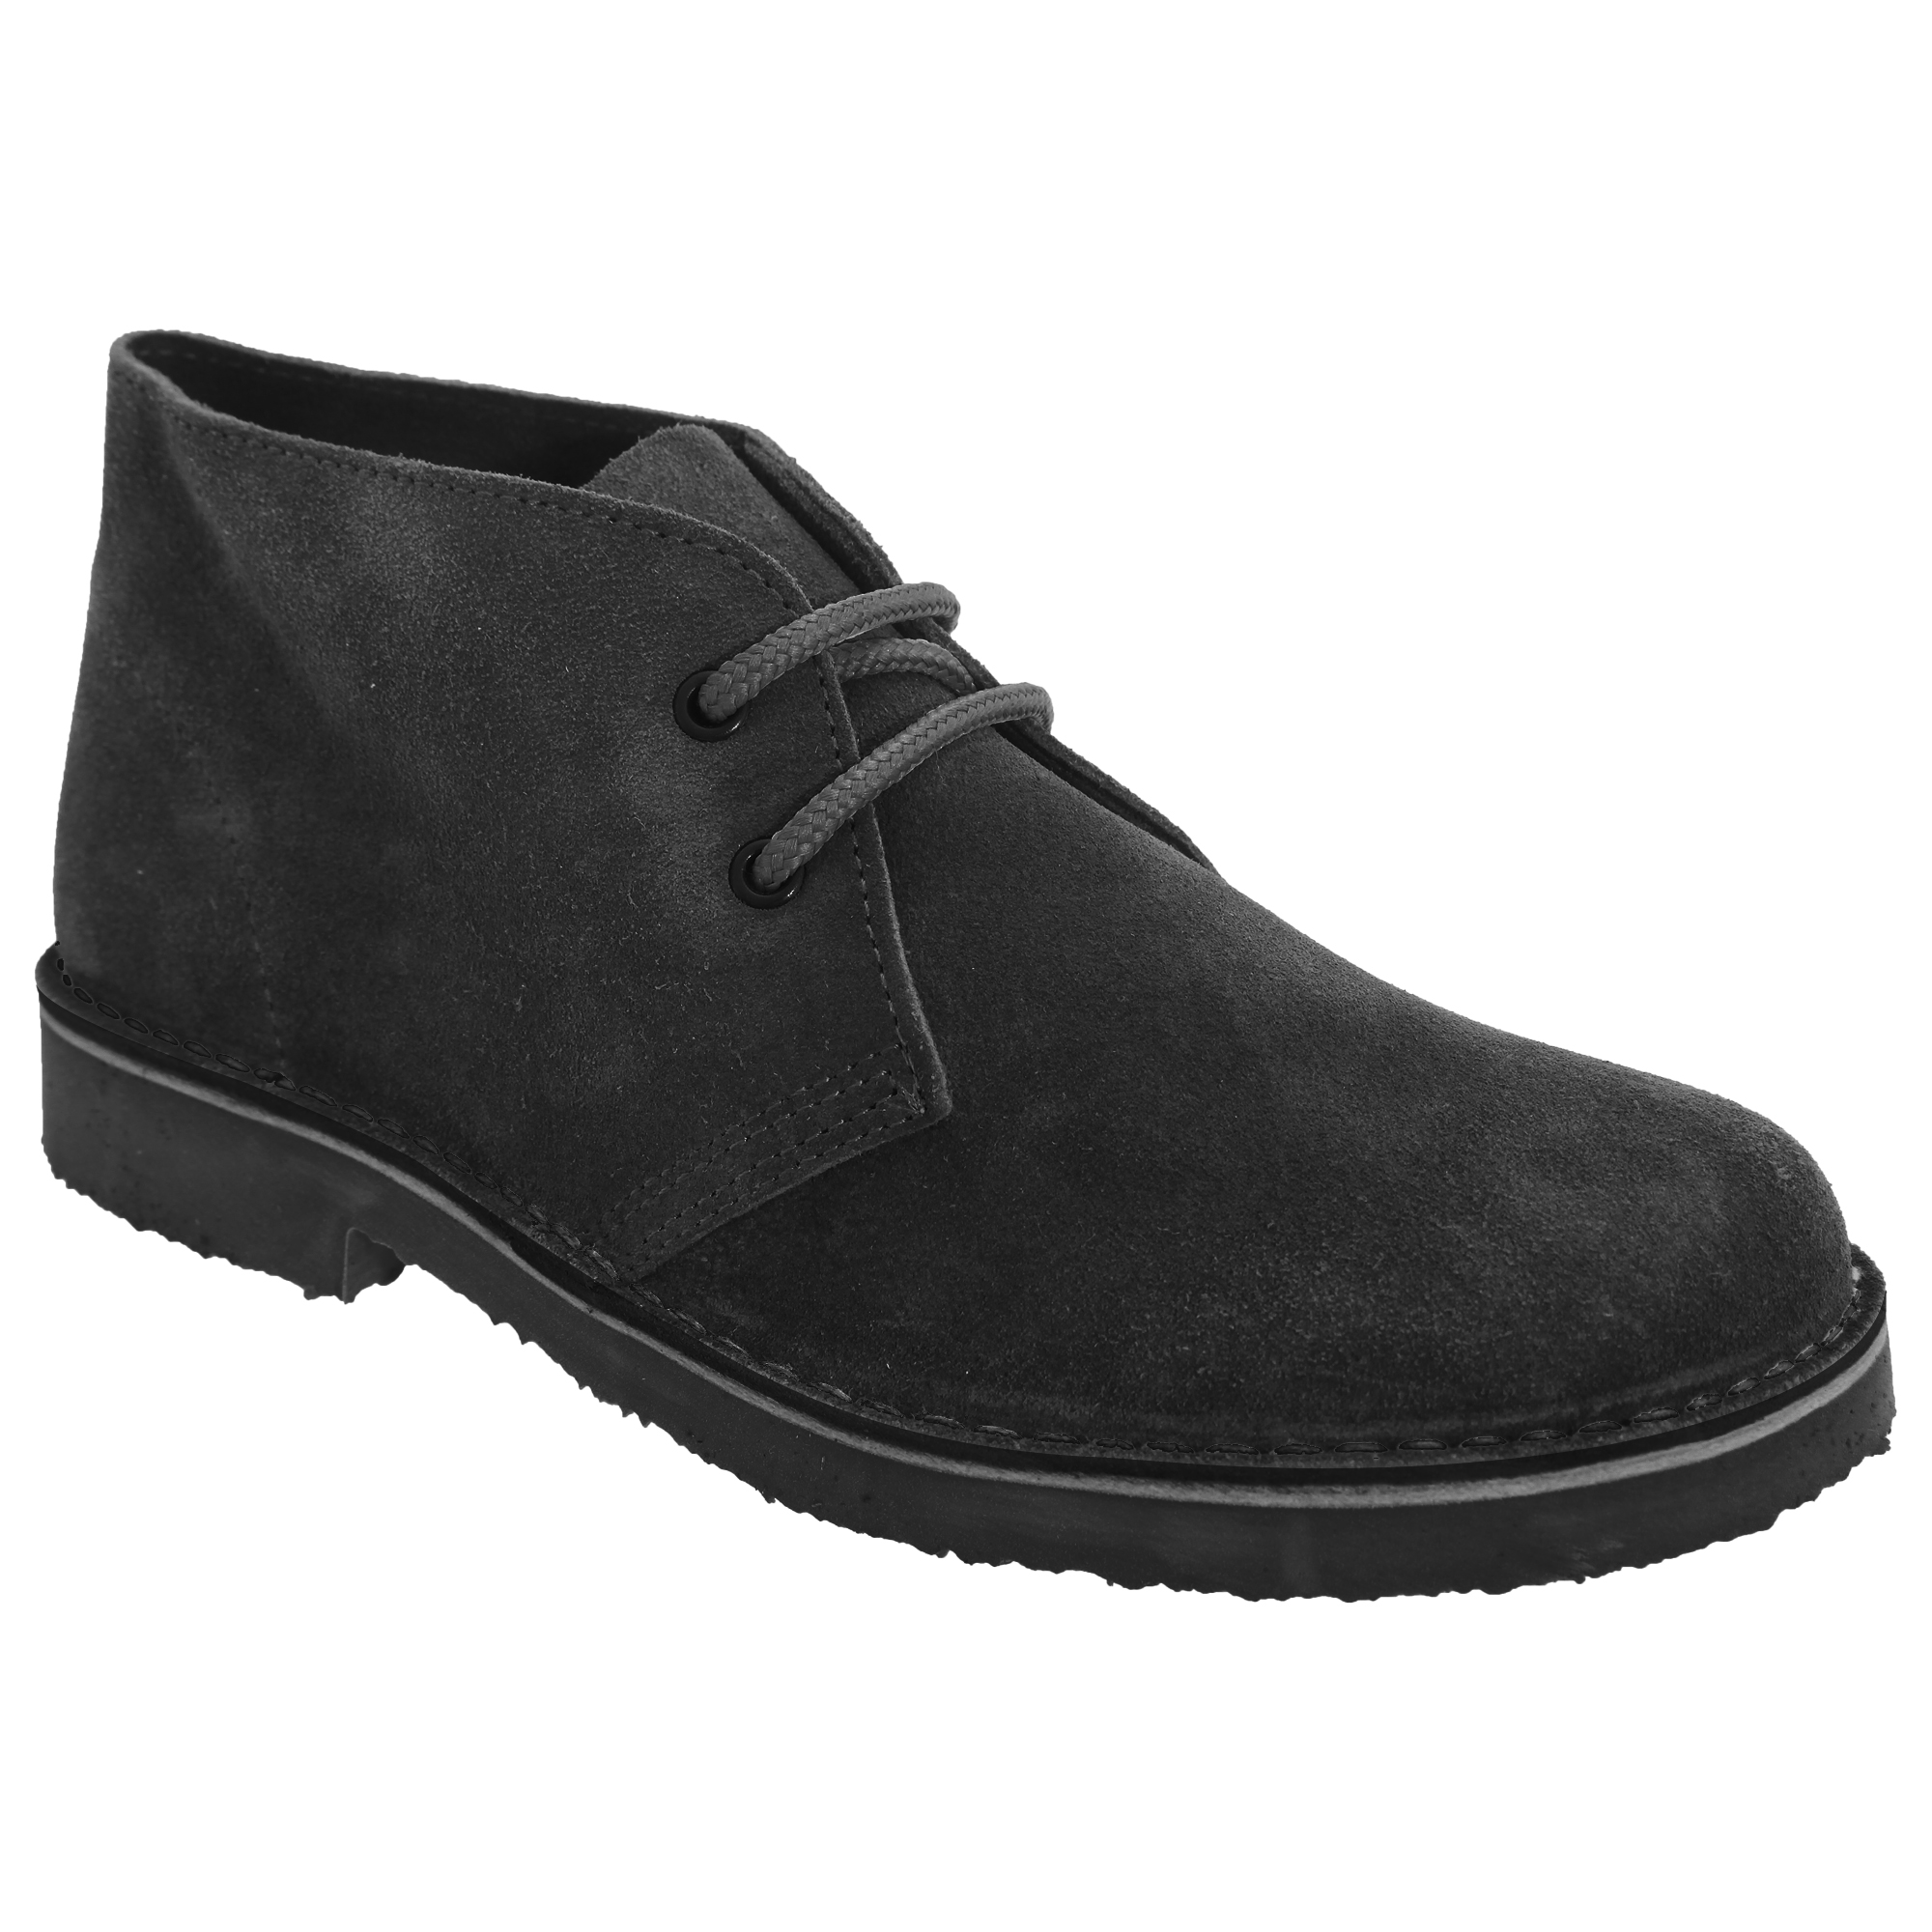 Roamers Womens/Ladies Real Suede Round Toe Unlined Desert Boots (4 UK) (Black)